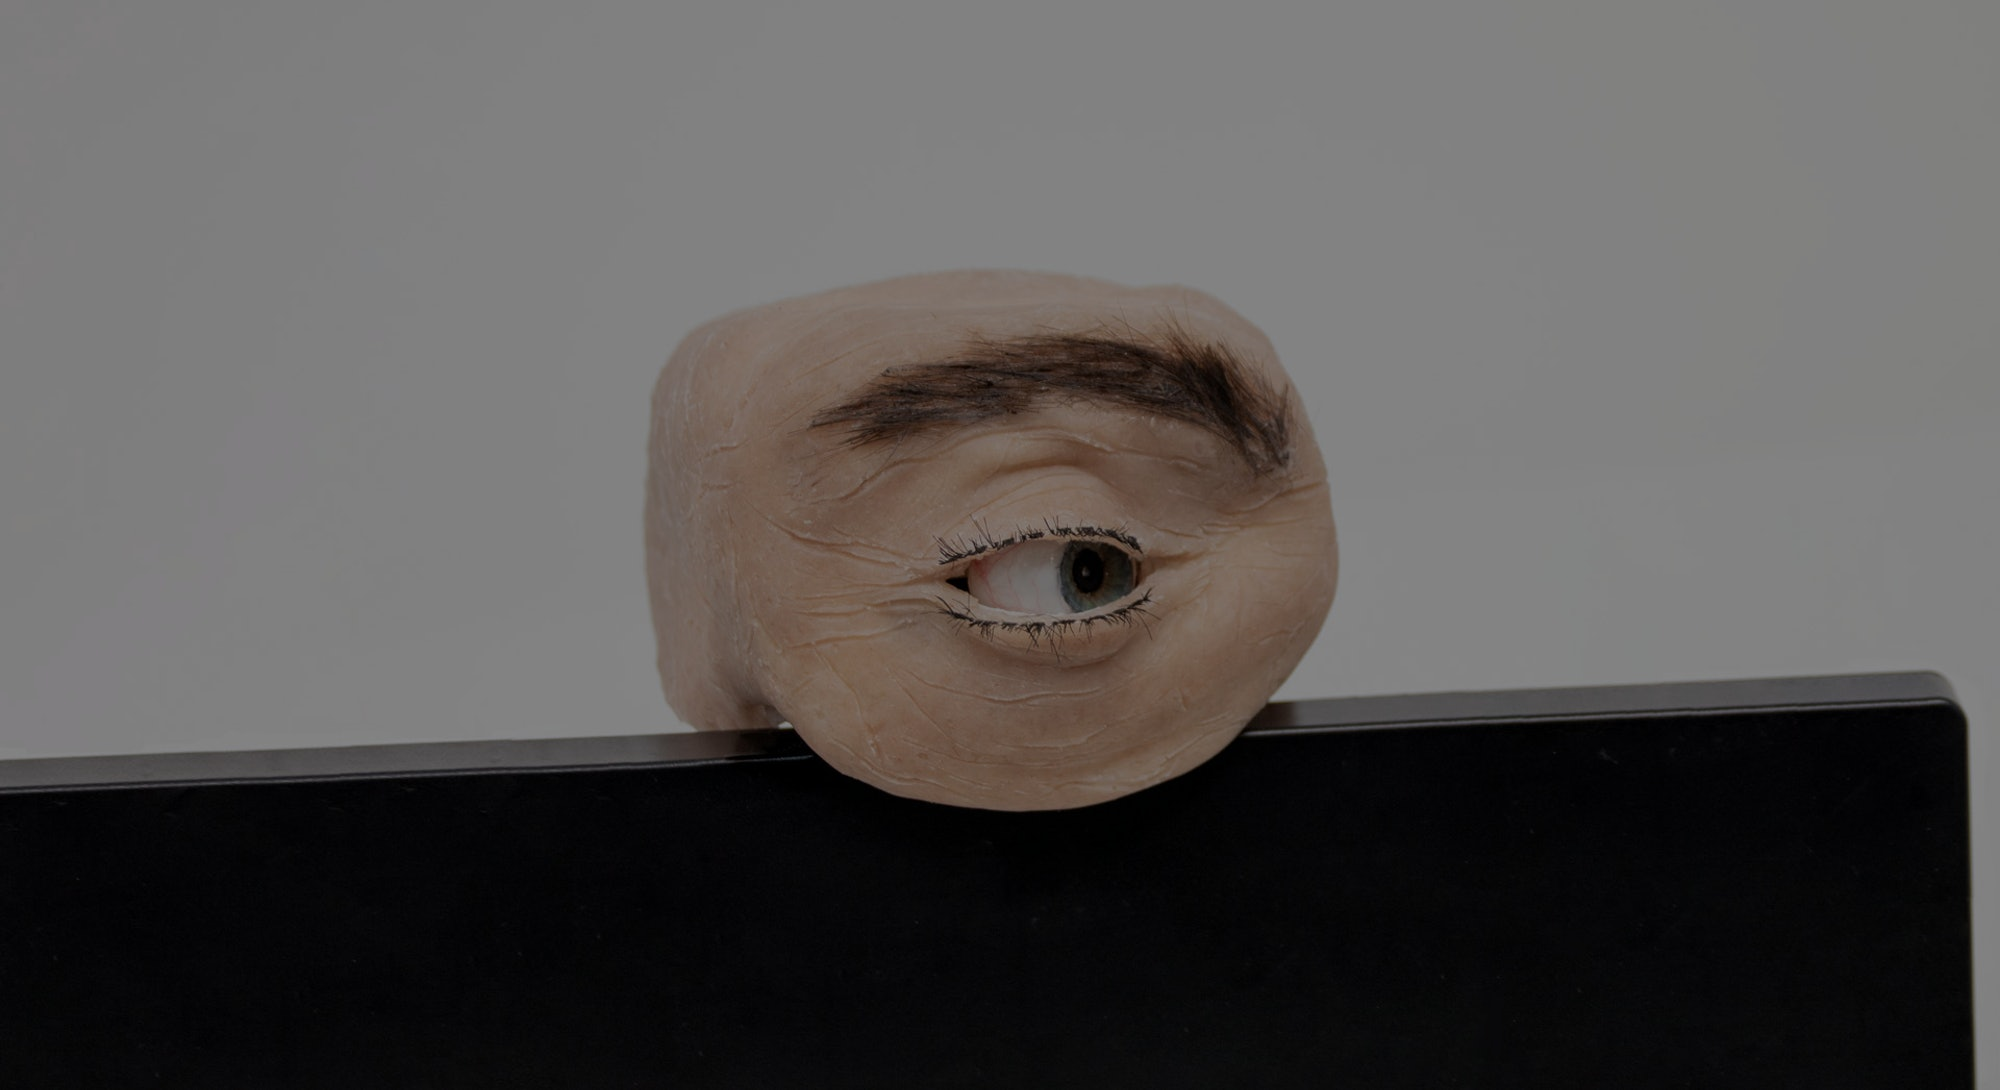 A human-like eye in the form of a webcam.